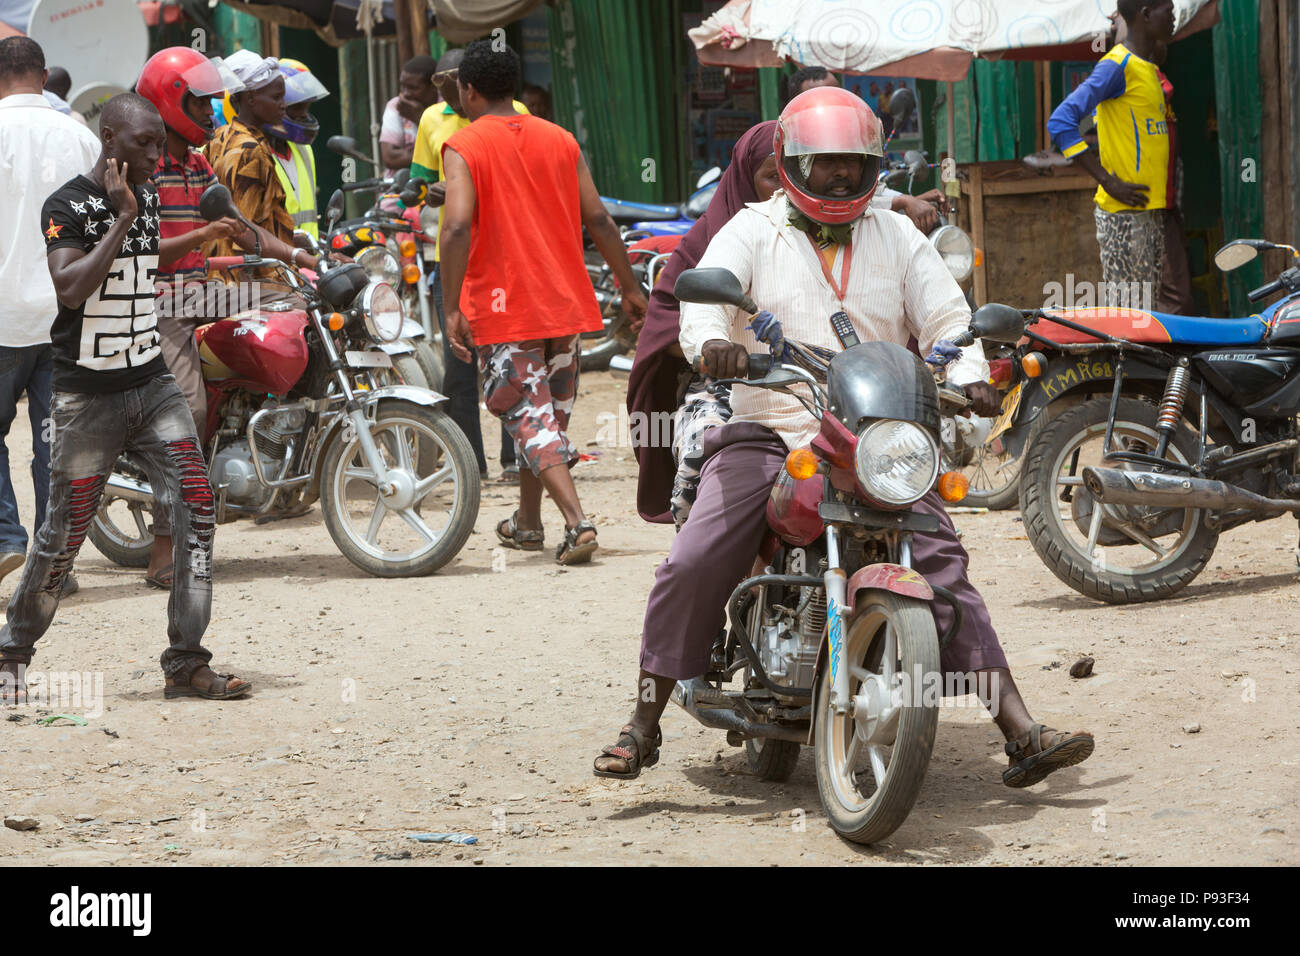 Kakuma, Kenya - Street scene with people and motorcycles. Motorcycle traffic on a busy unpaved road. - Stock Image